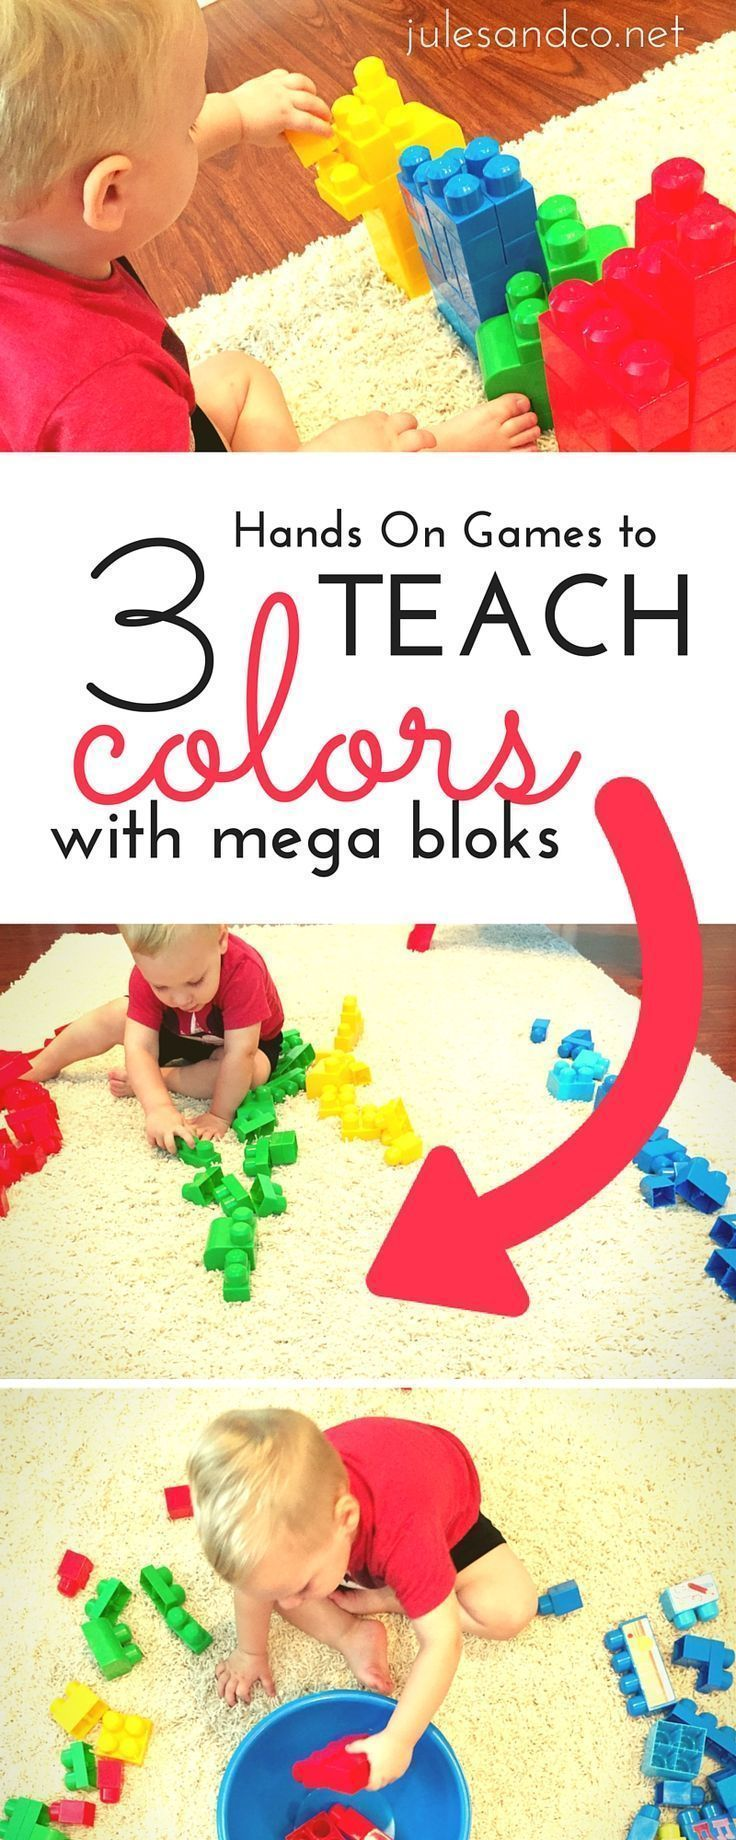 Toddler color learning games - 25 Best Ideas About Learning Colors On Pinterest Teaching Toddlers Colors Activities To Do With Toddlers And Counting Sort